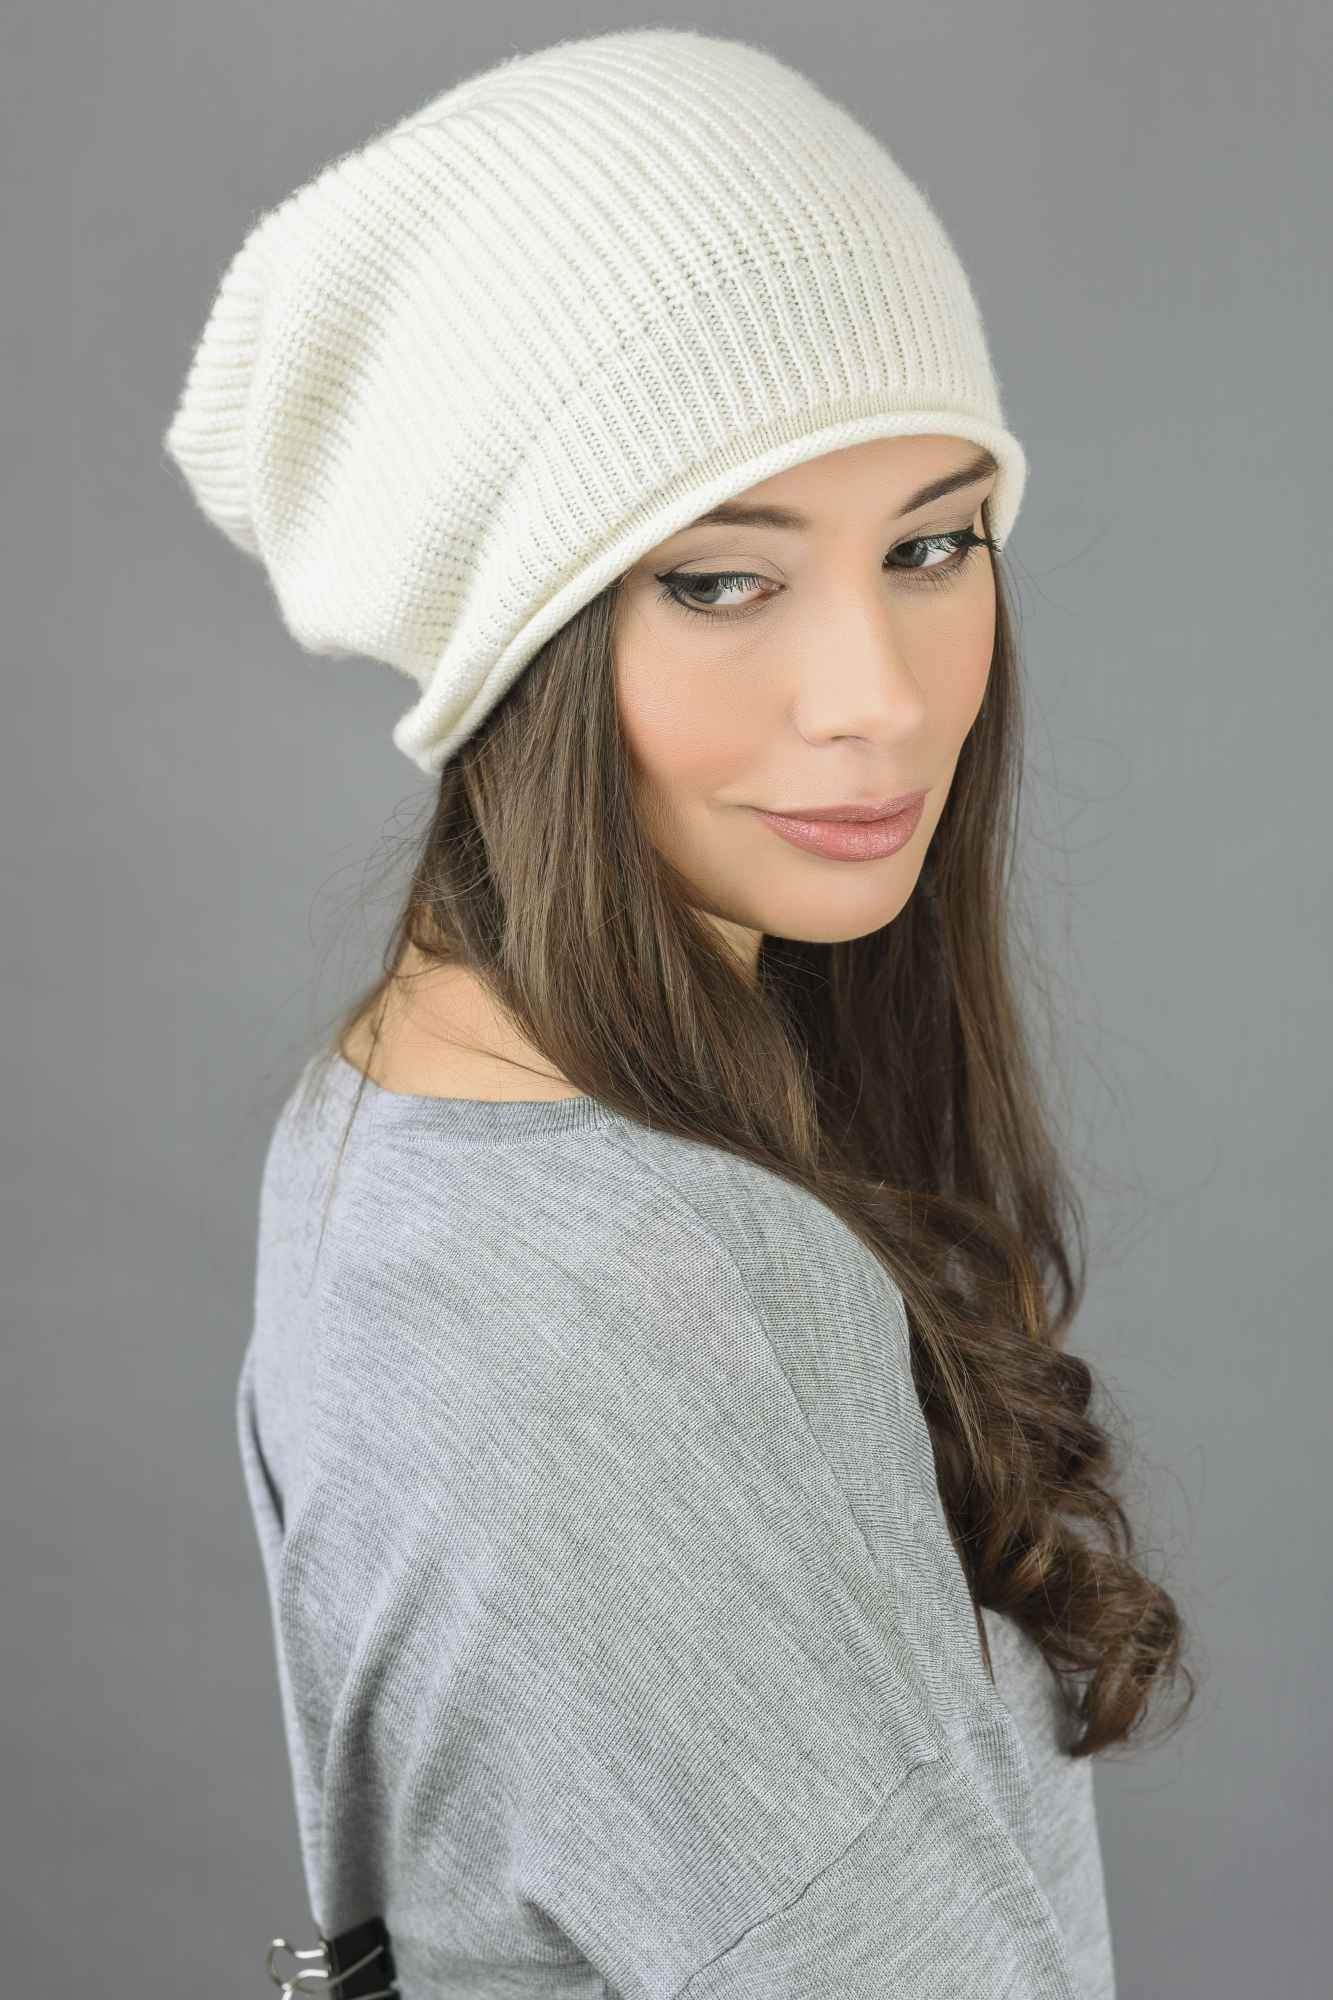 dac5ba6c0a6 Pure Cashmere Ribbed Knitted Slouchy Beanie Hat in Cream White ...